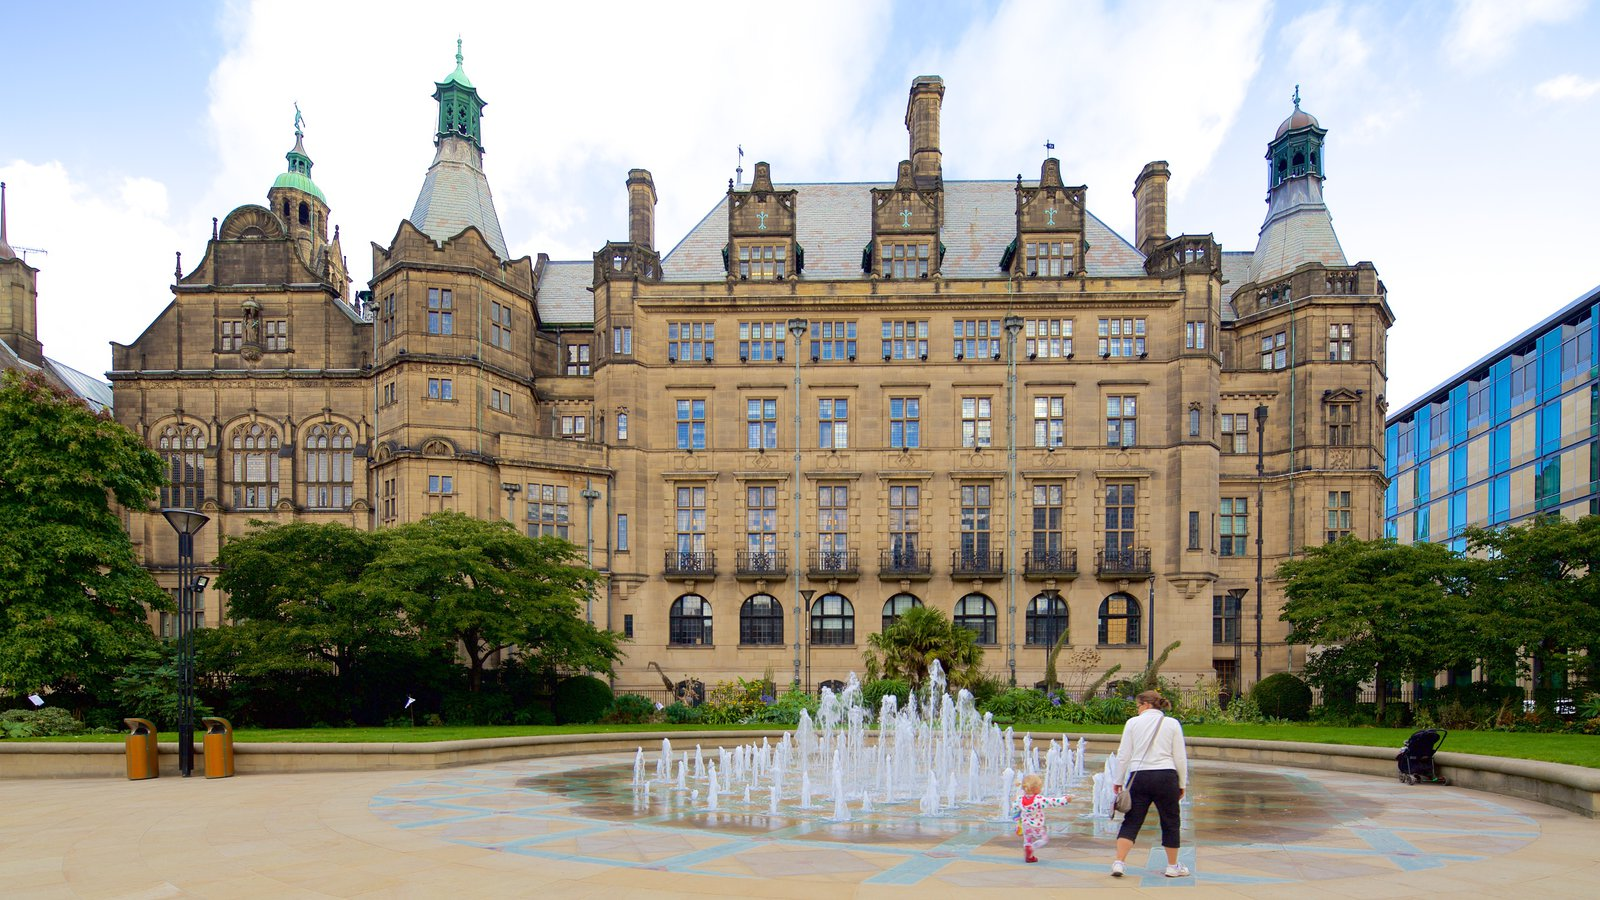 People Pictures: View Images of Sheffield